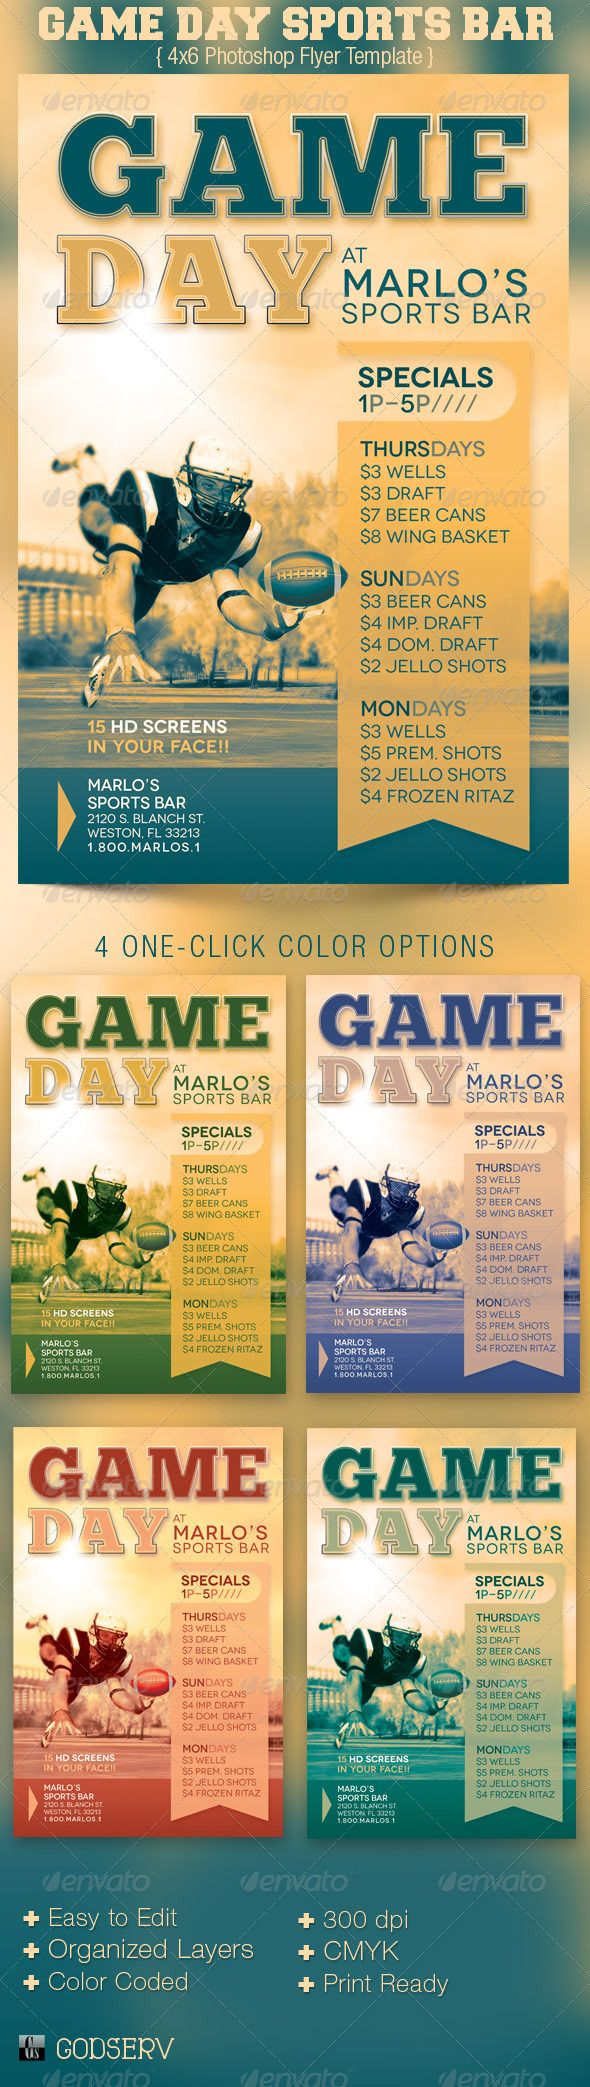 Game Day Sports Bar Flyer Template